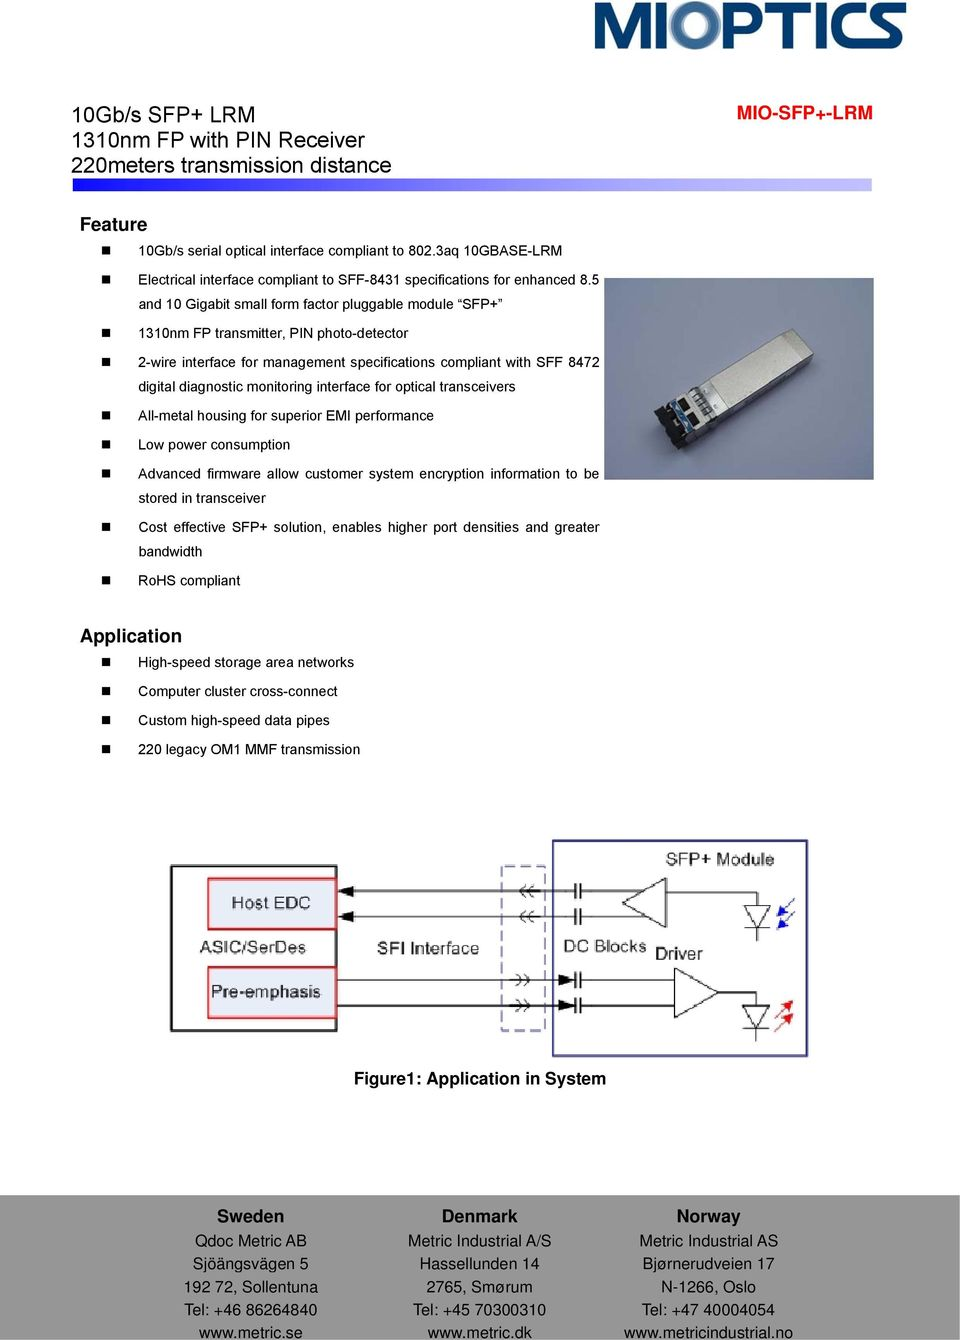 interface for optical transceivers All-metal housing for superior EMI performance Low power consumption Advanced firmware allow customer system encryption information to be stored in transceiver Cost